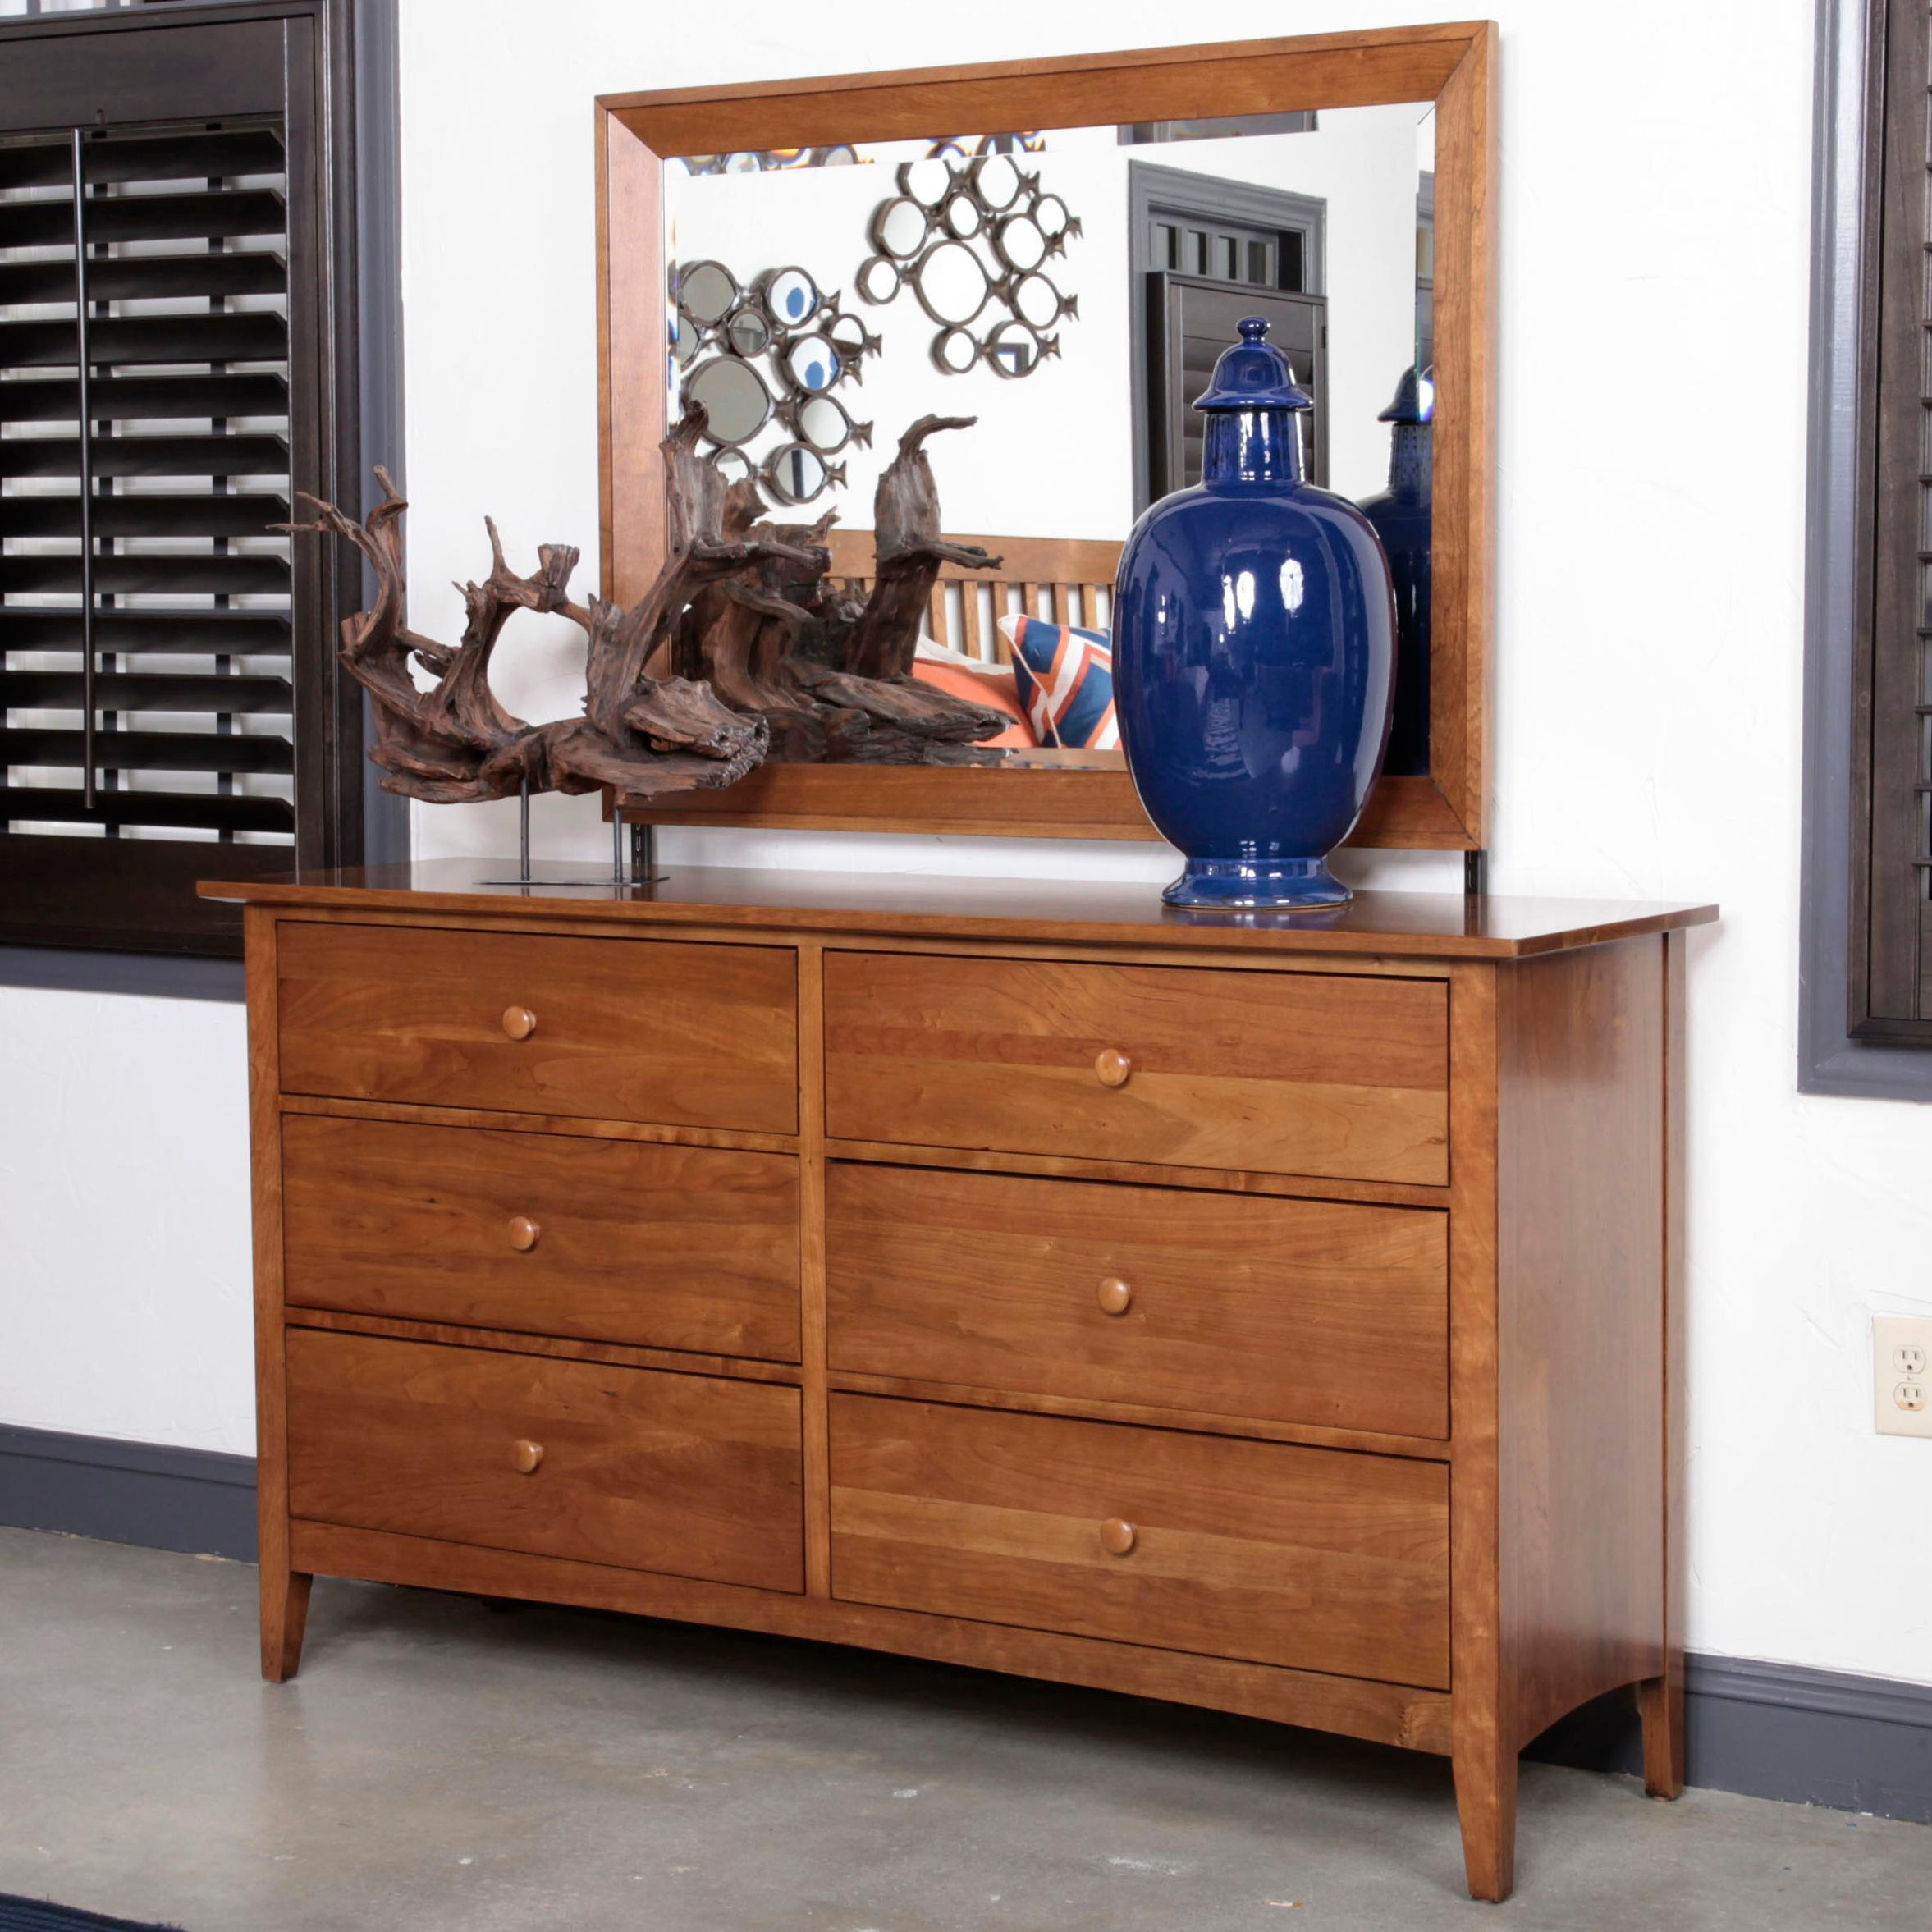 Kincaid Furniture Gatherings Dresser and Mirror - Item Number: 44-0911+44-1410